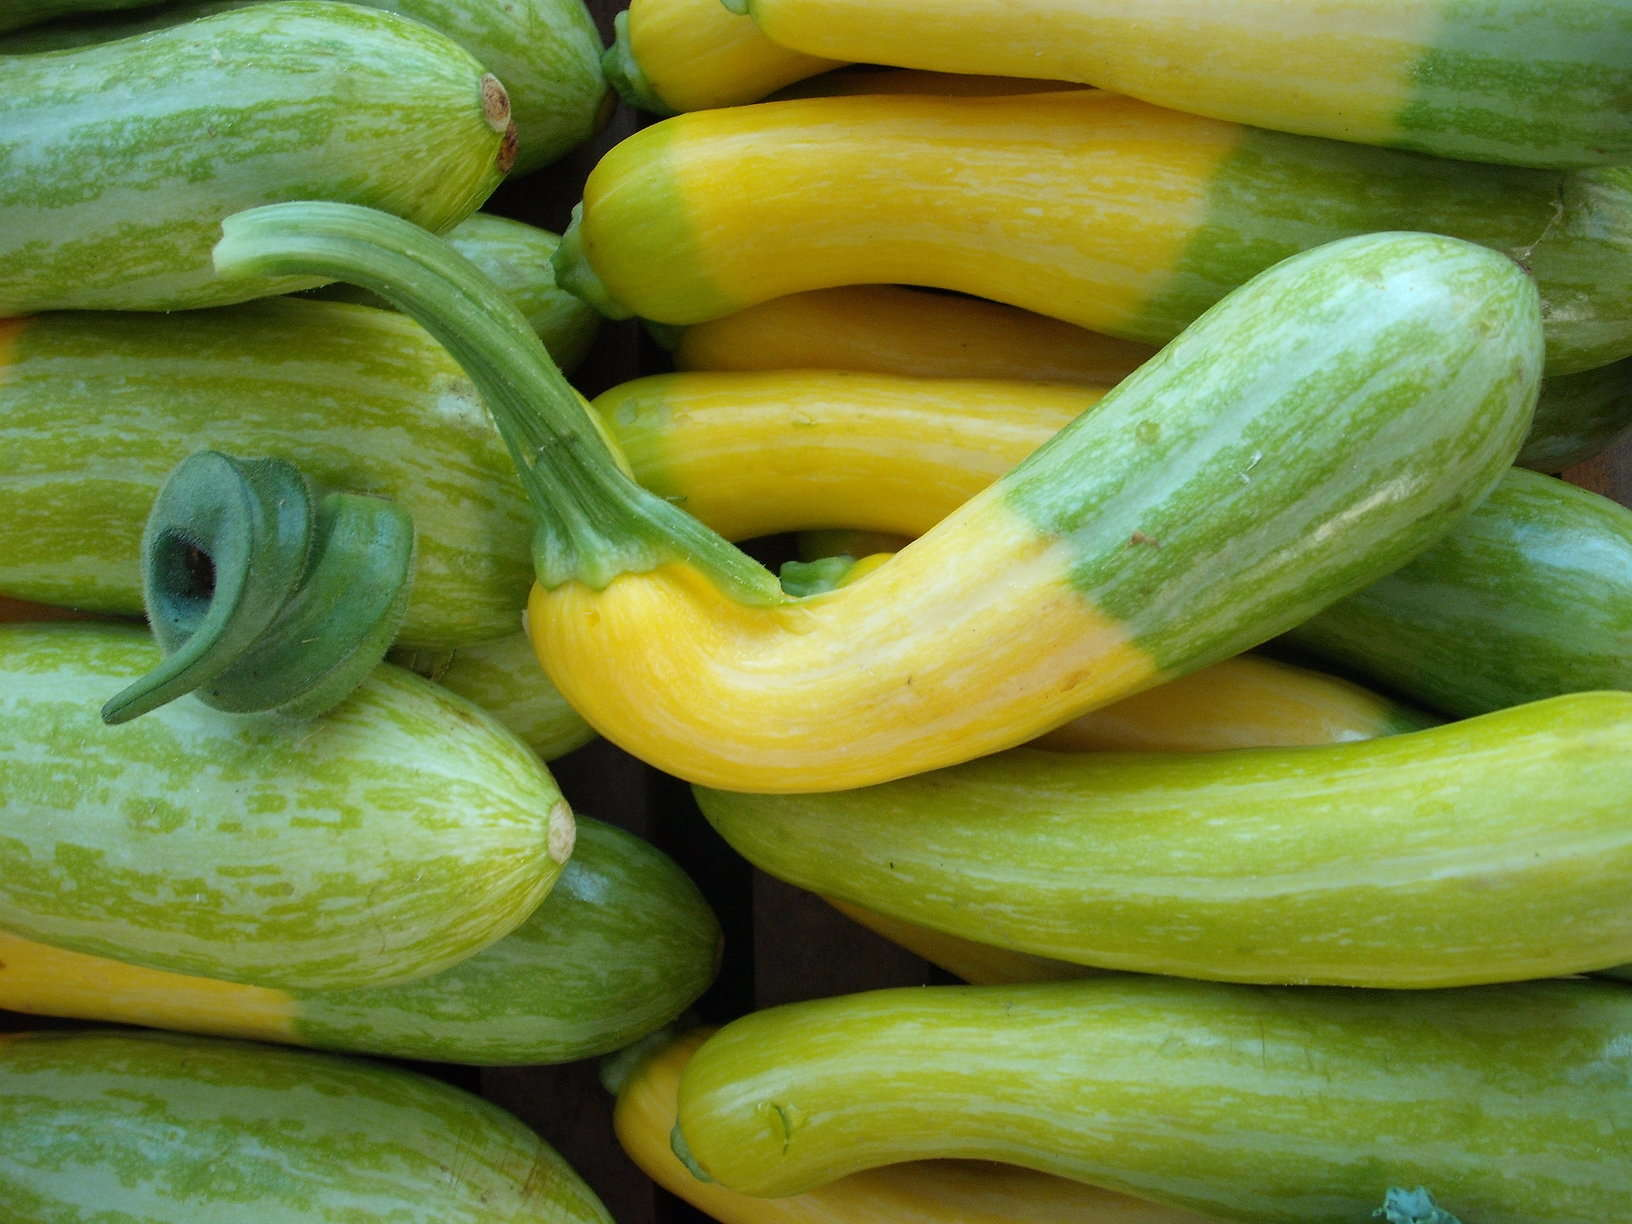 misshapen okra and summer squash at the farmer's market